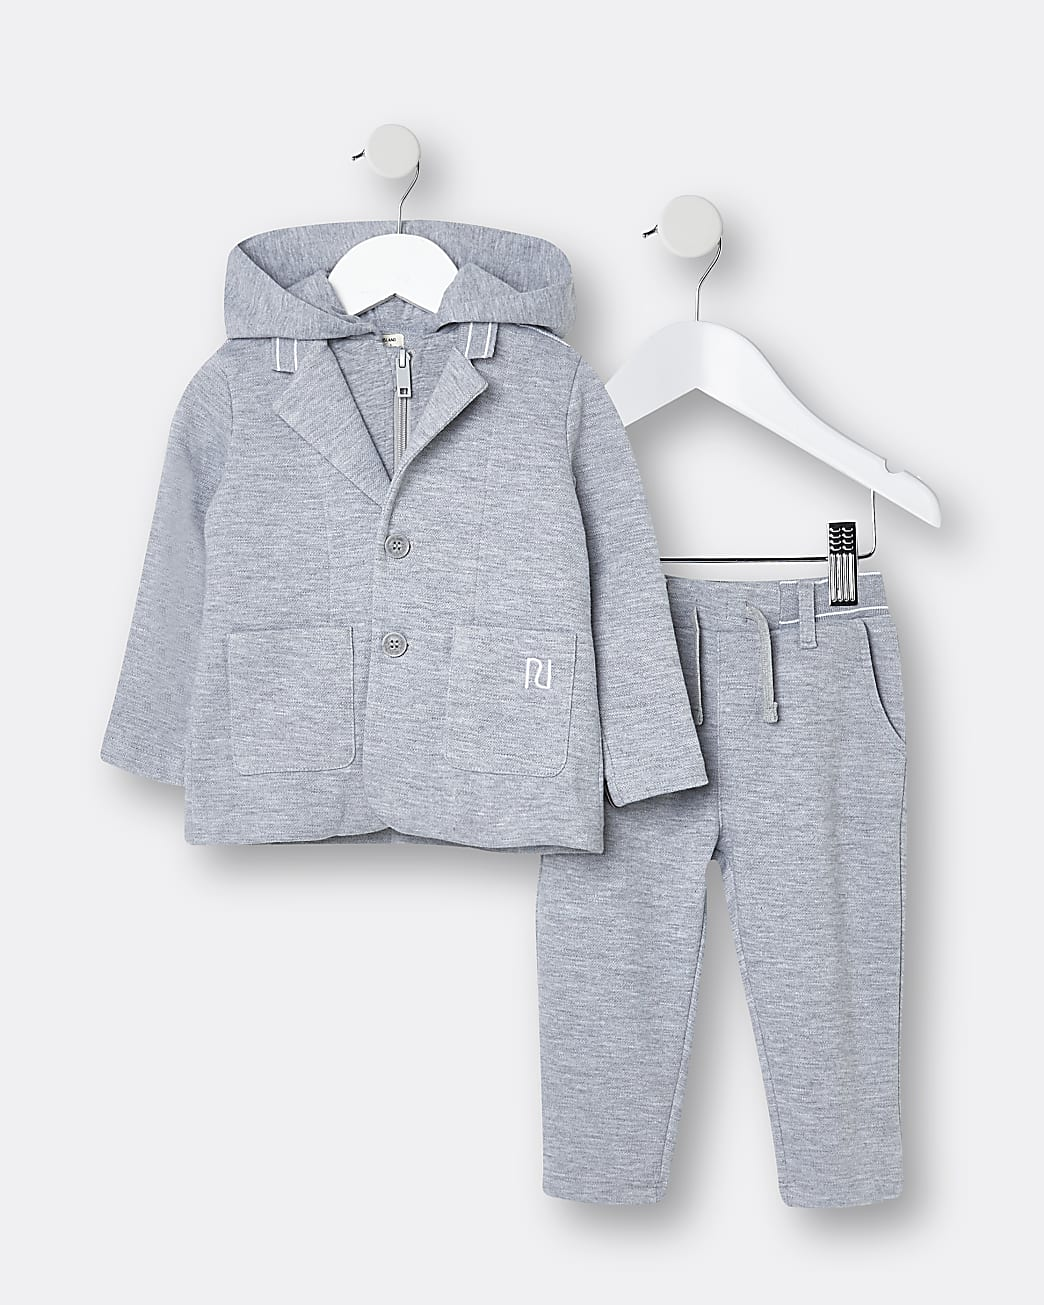 Mini boys grey hooded suit 2 piece outfit